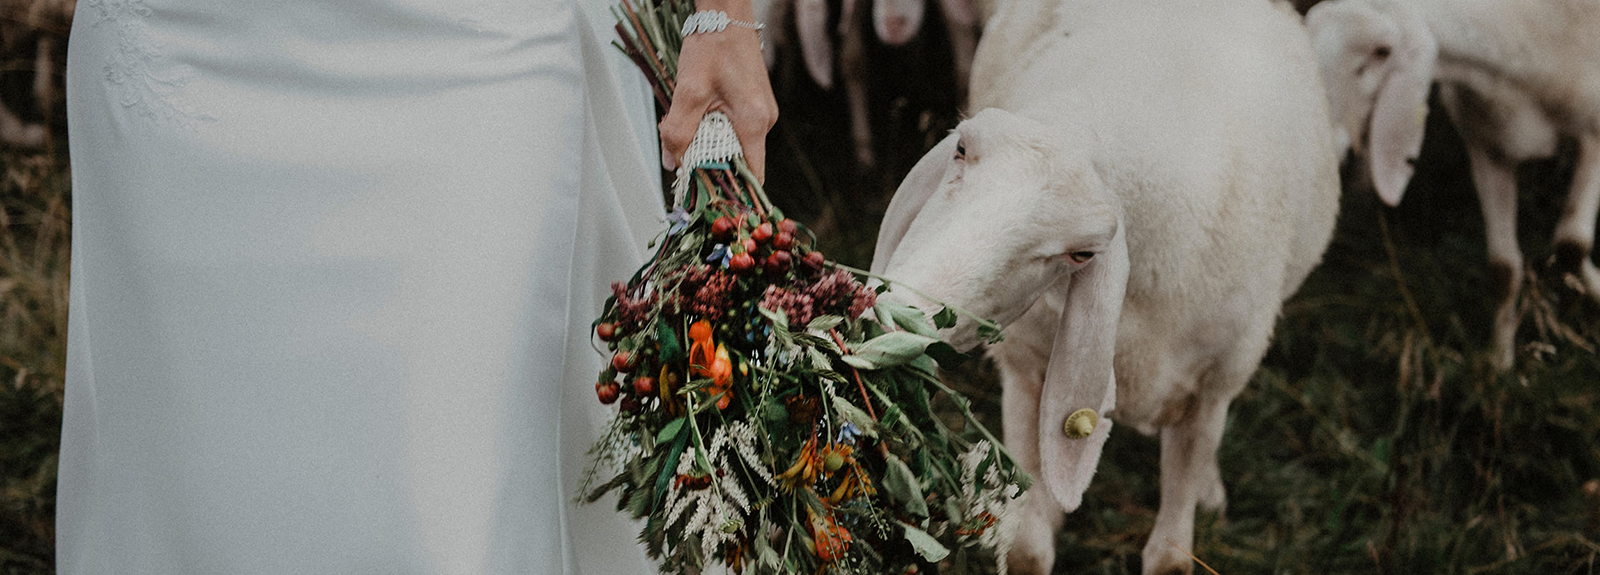 Heiraten in Südtirol - Romantik pur